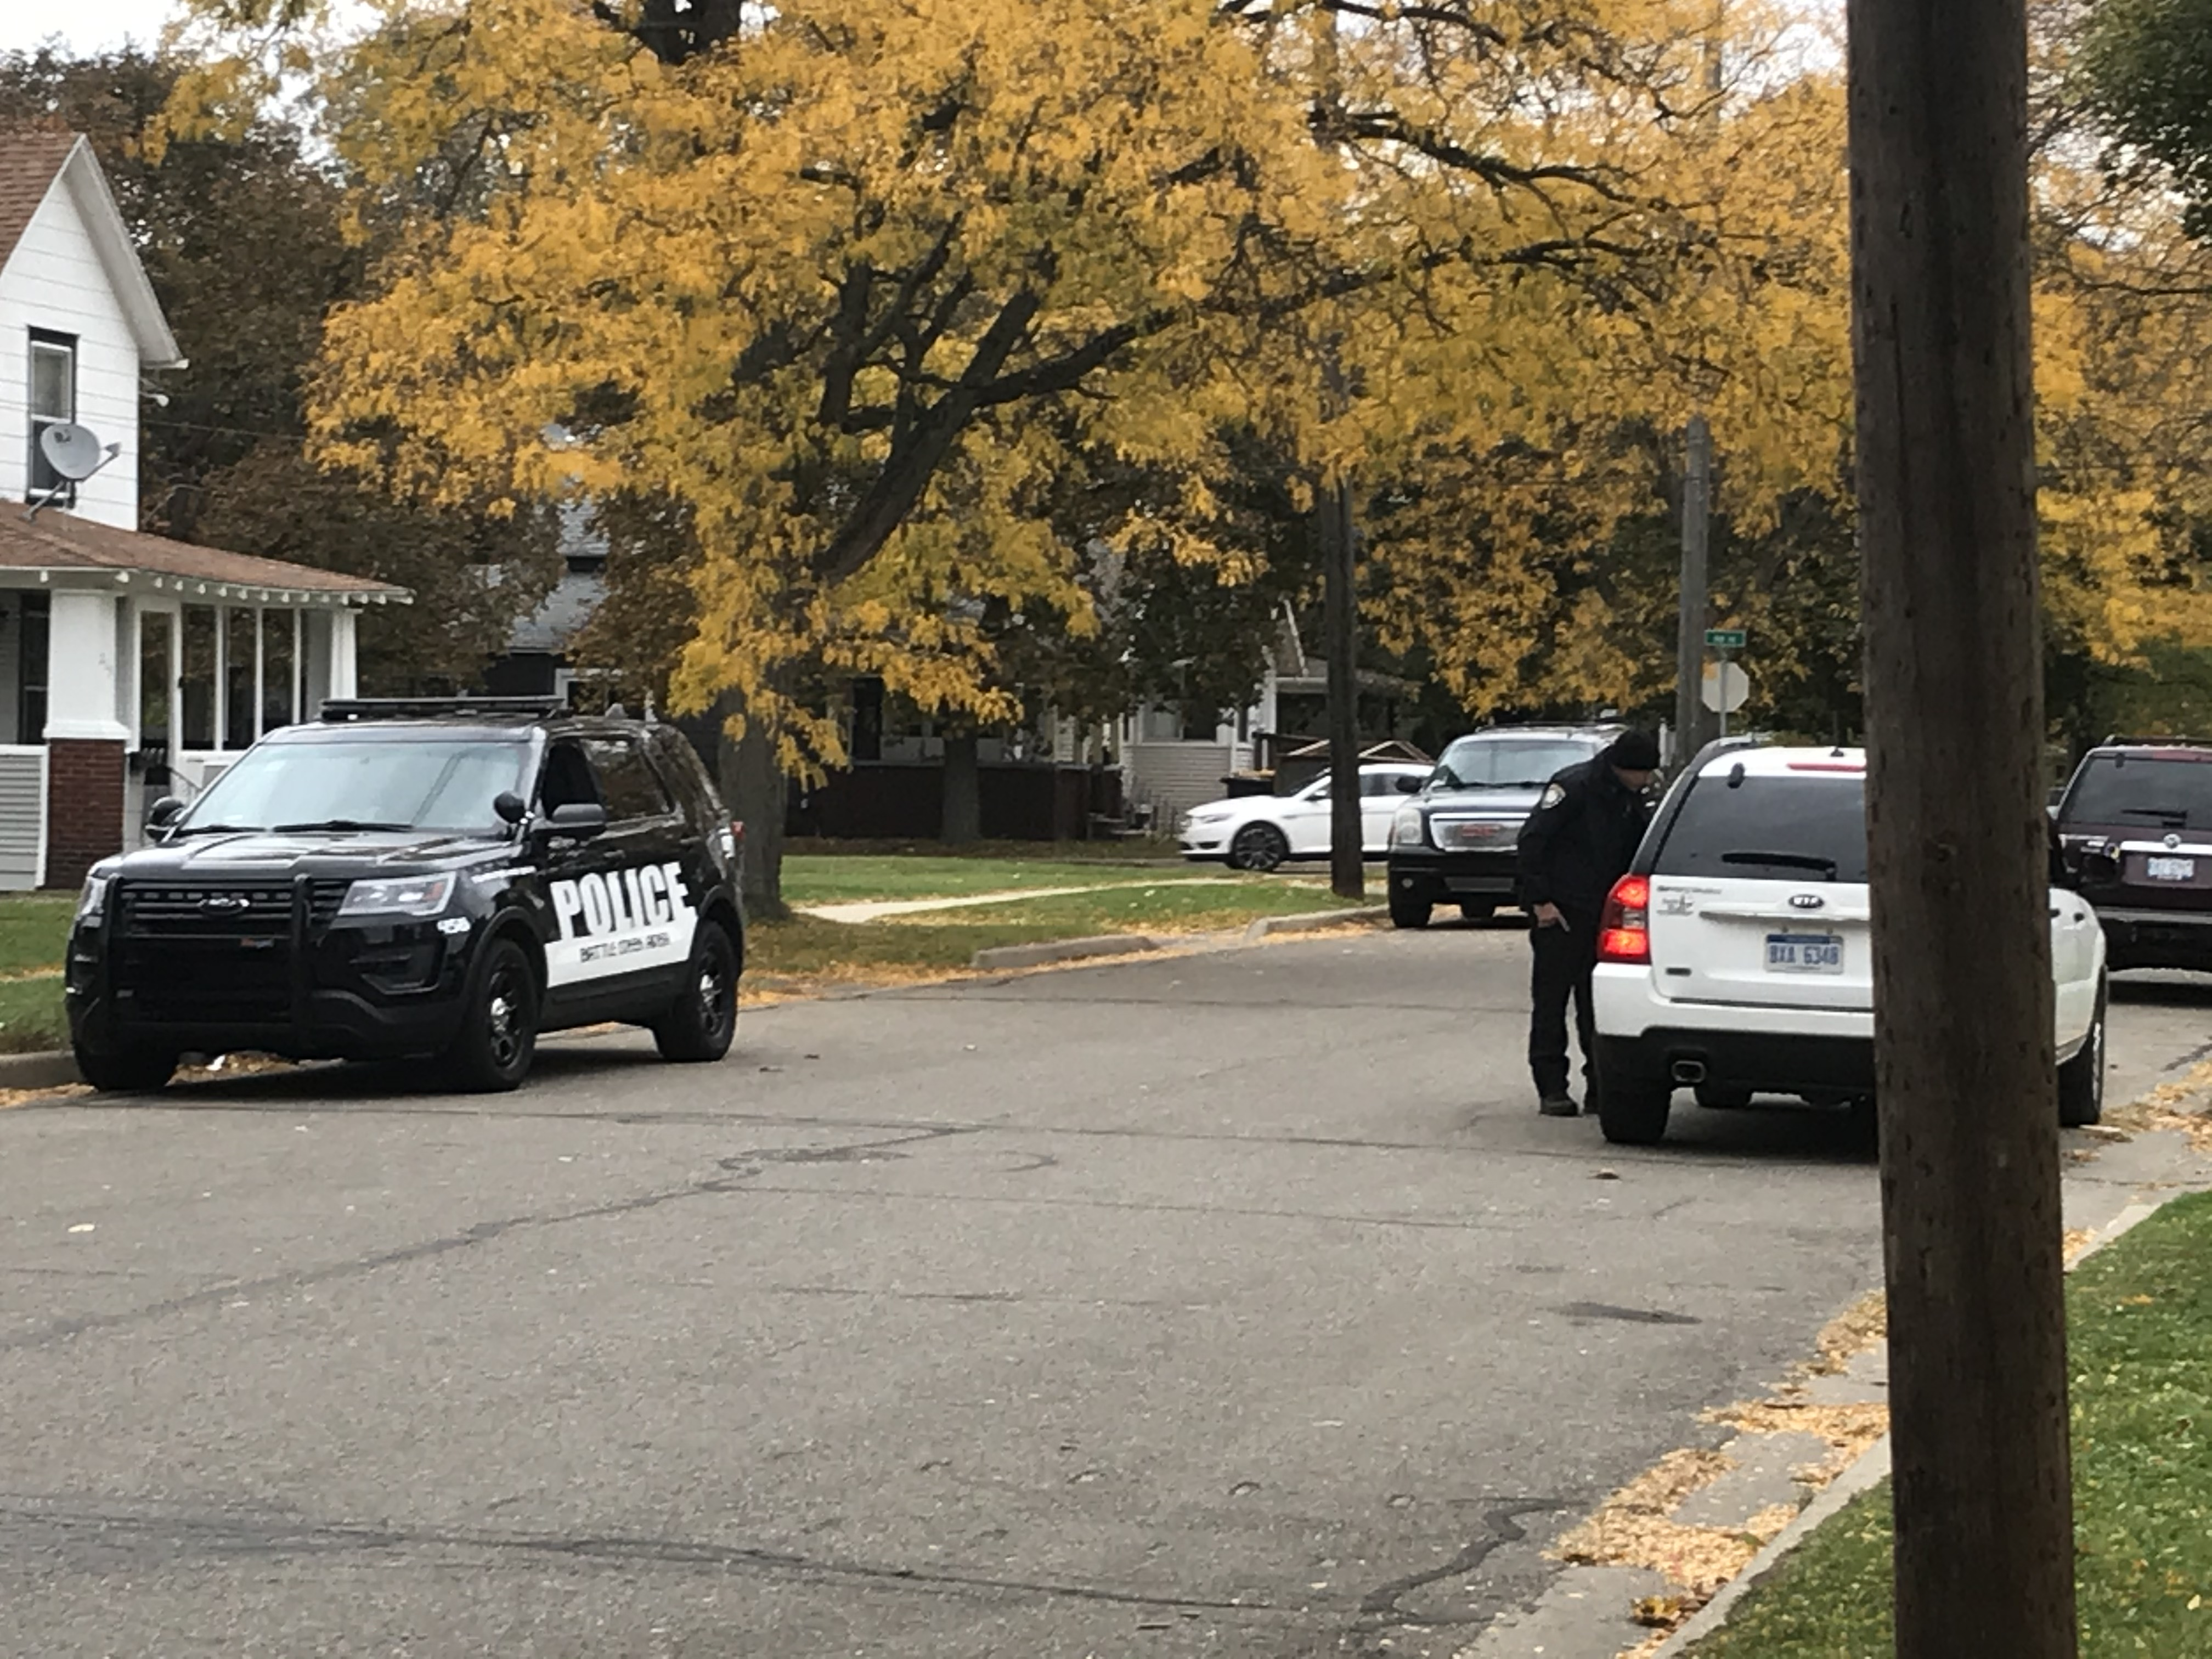 Battle Creek Police investigate the house where the missing couple lived Oct. 15, 2020. (WWMT/Tarvarious Haywood)